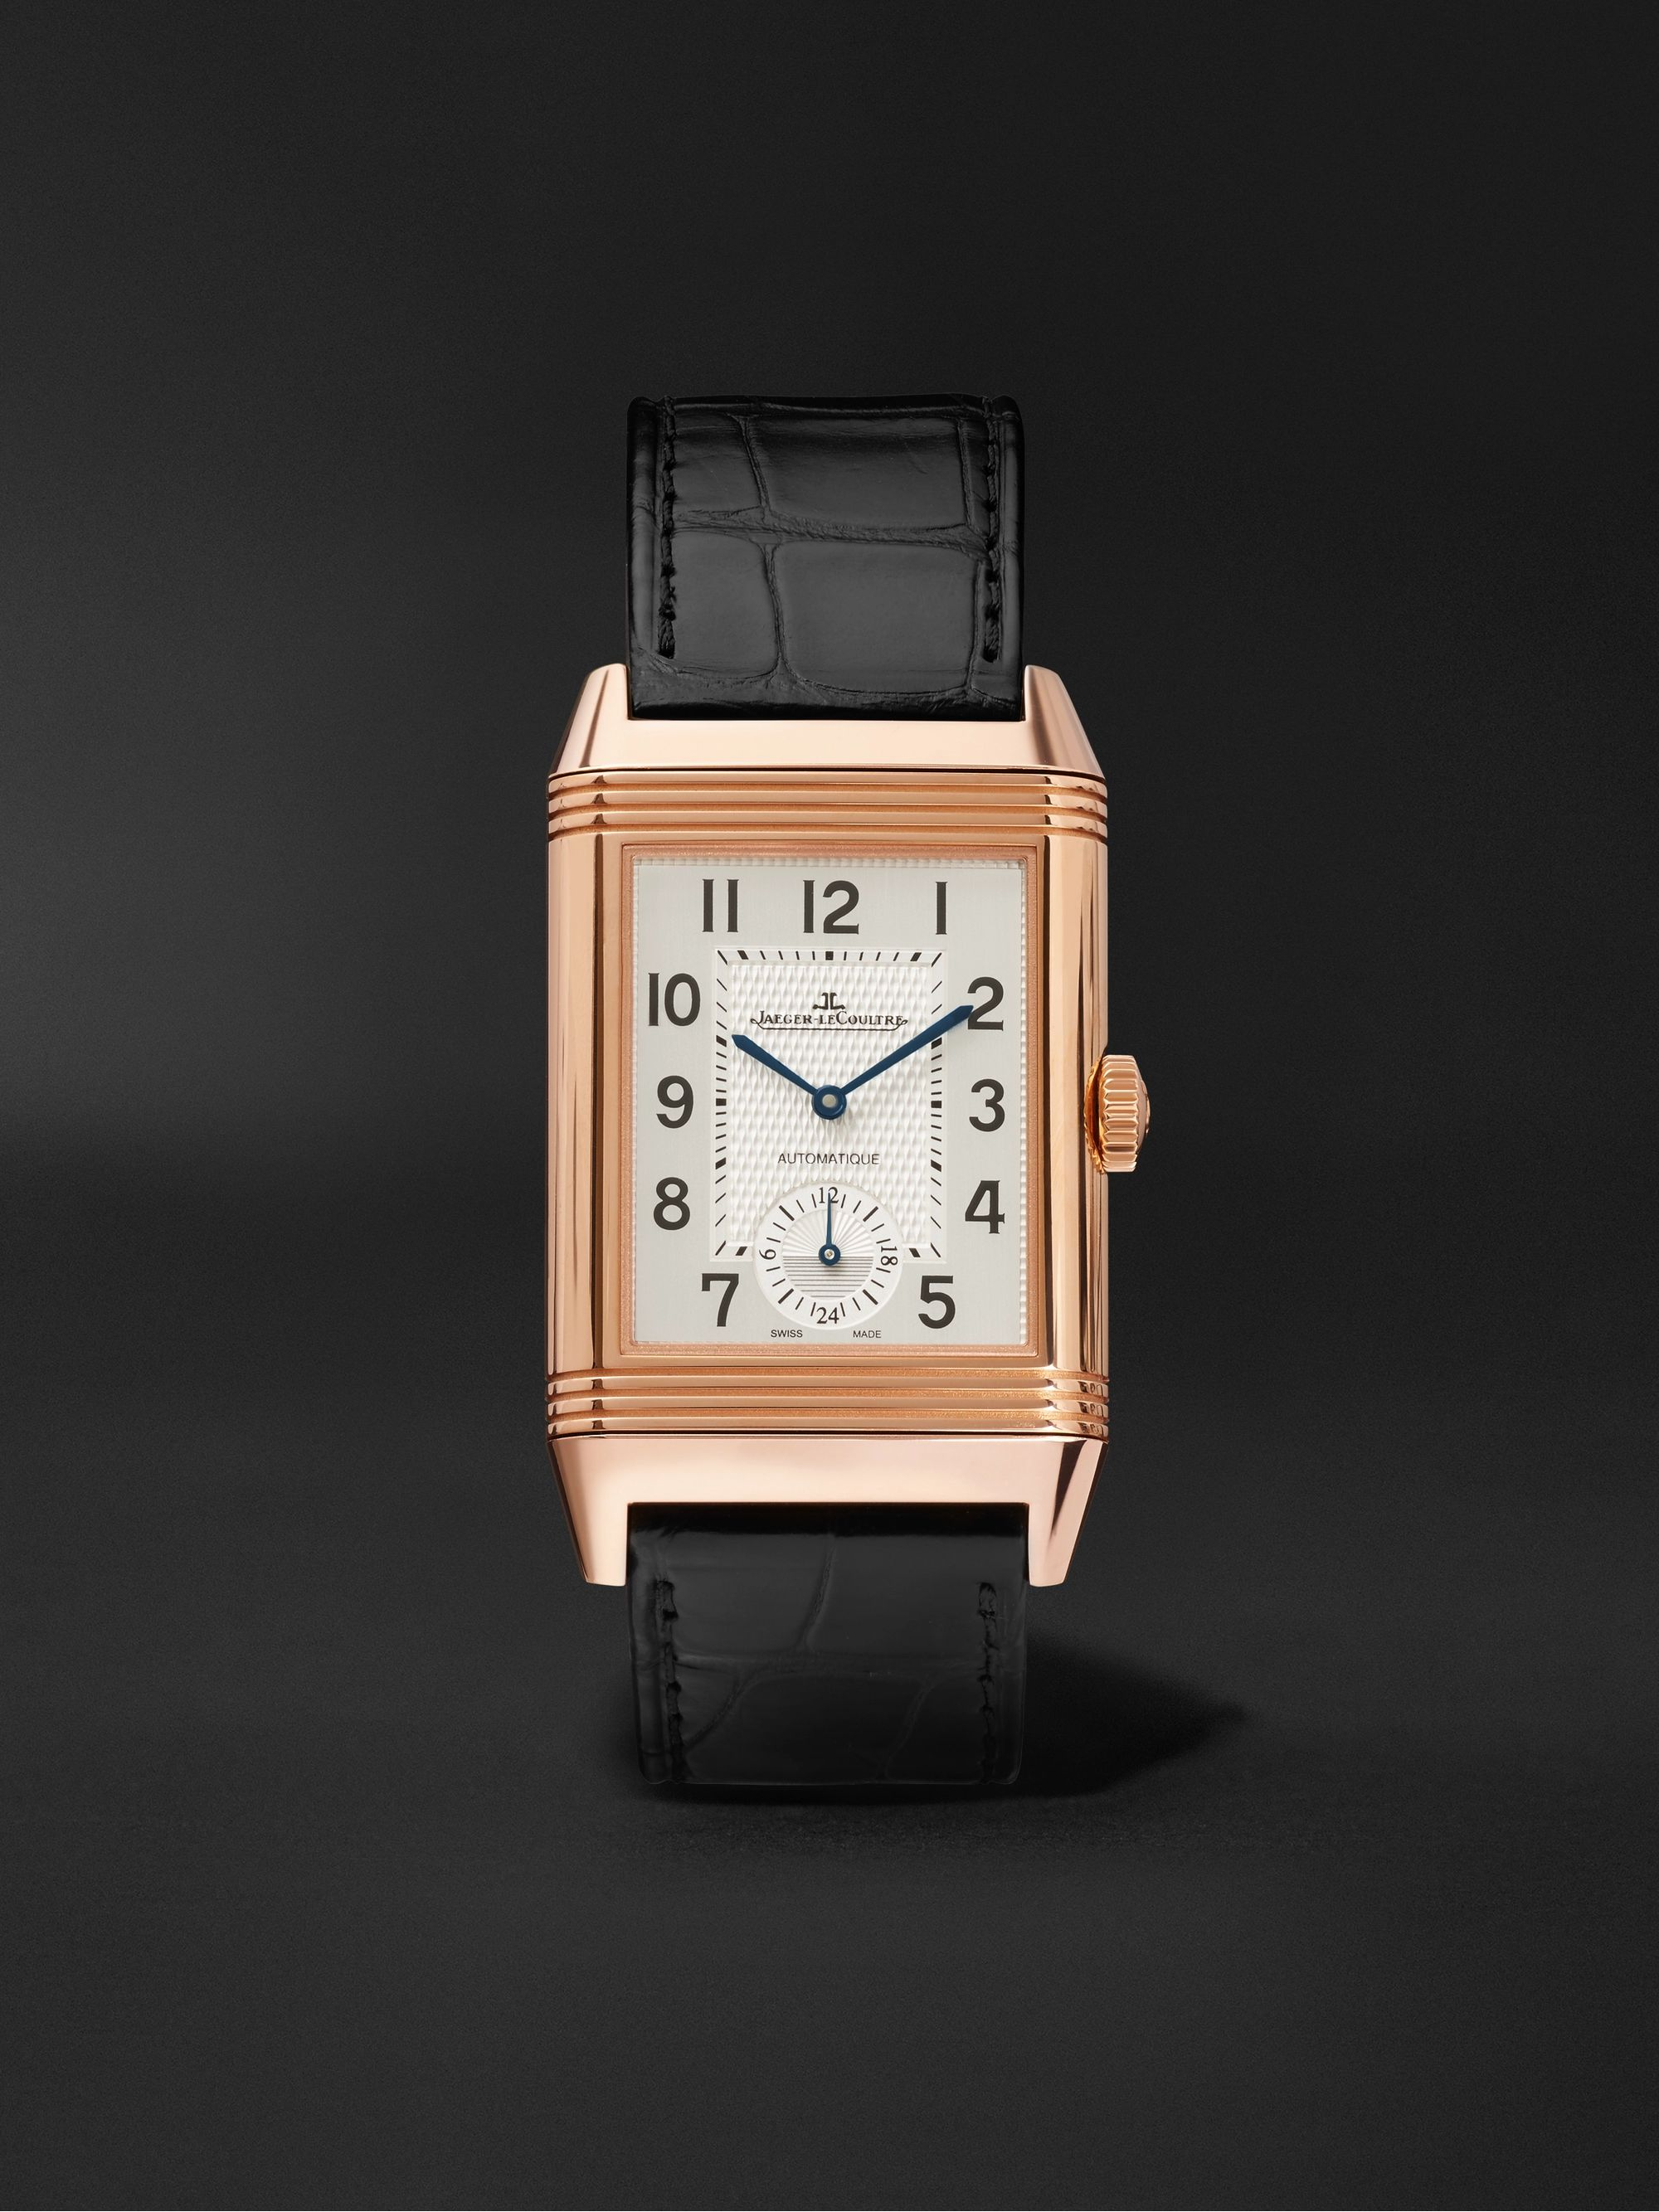 Jaeger-LeCoultre Reverso Classic Large Duoface Automatic 28mm 18-Karat Rose Gold and Alligator Watch, Ref. No. Q1368470